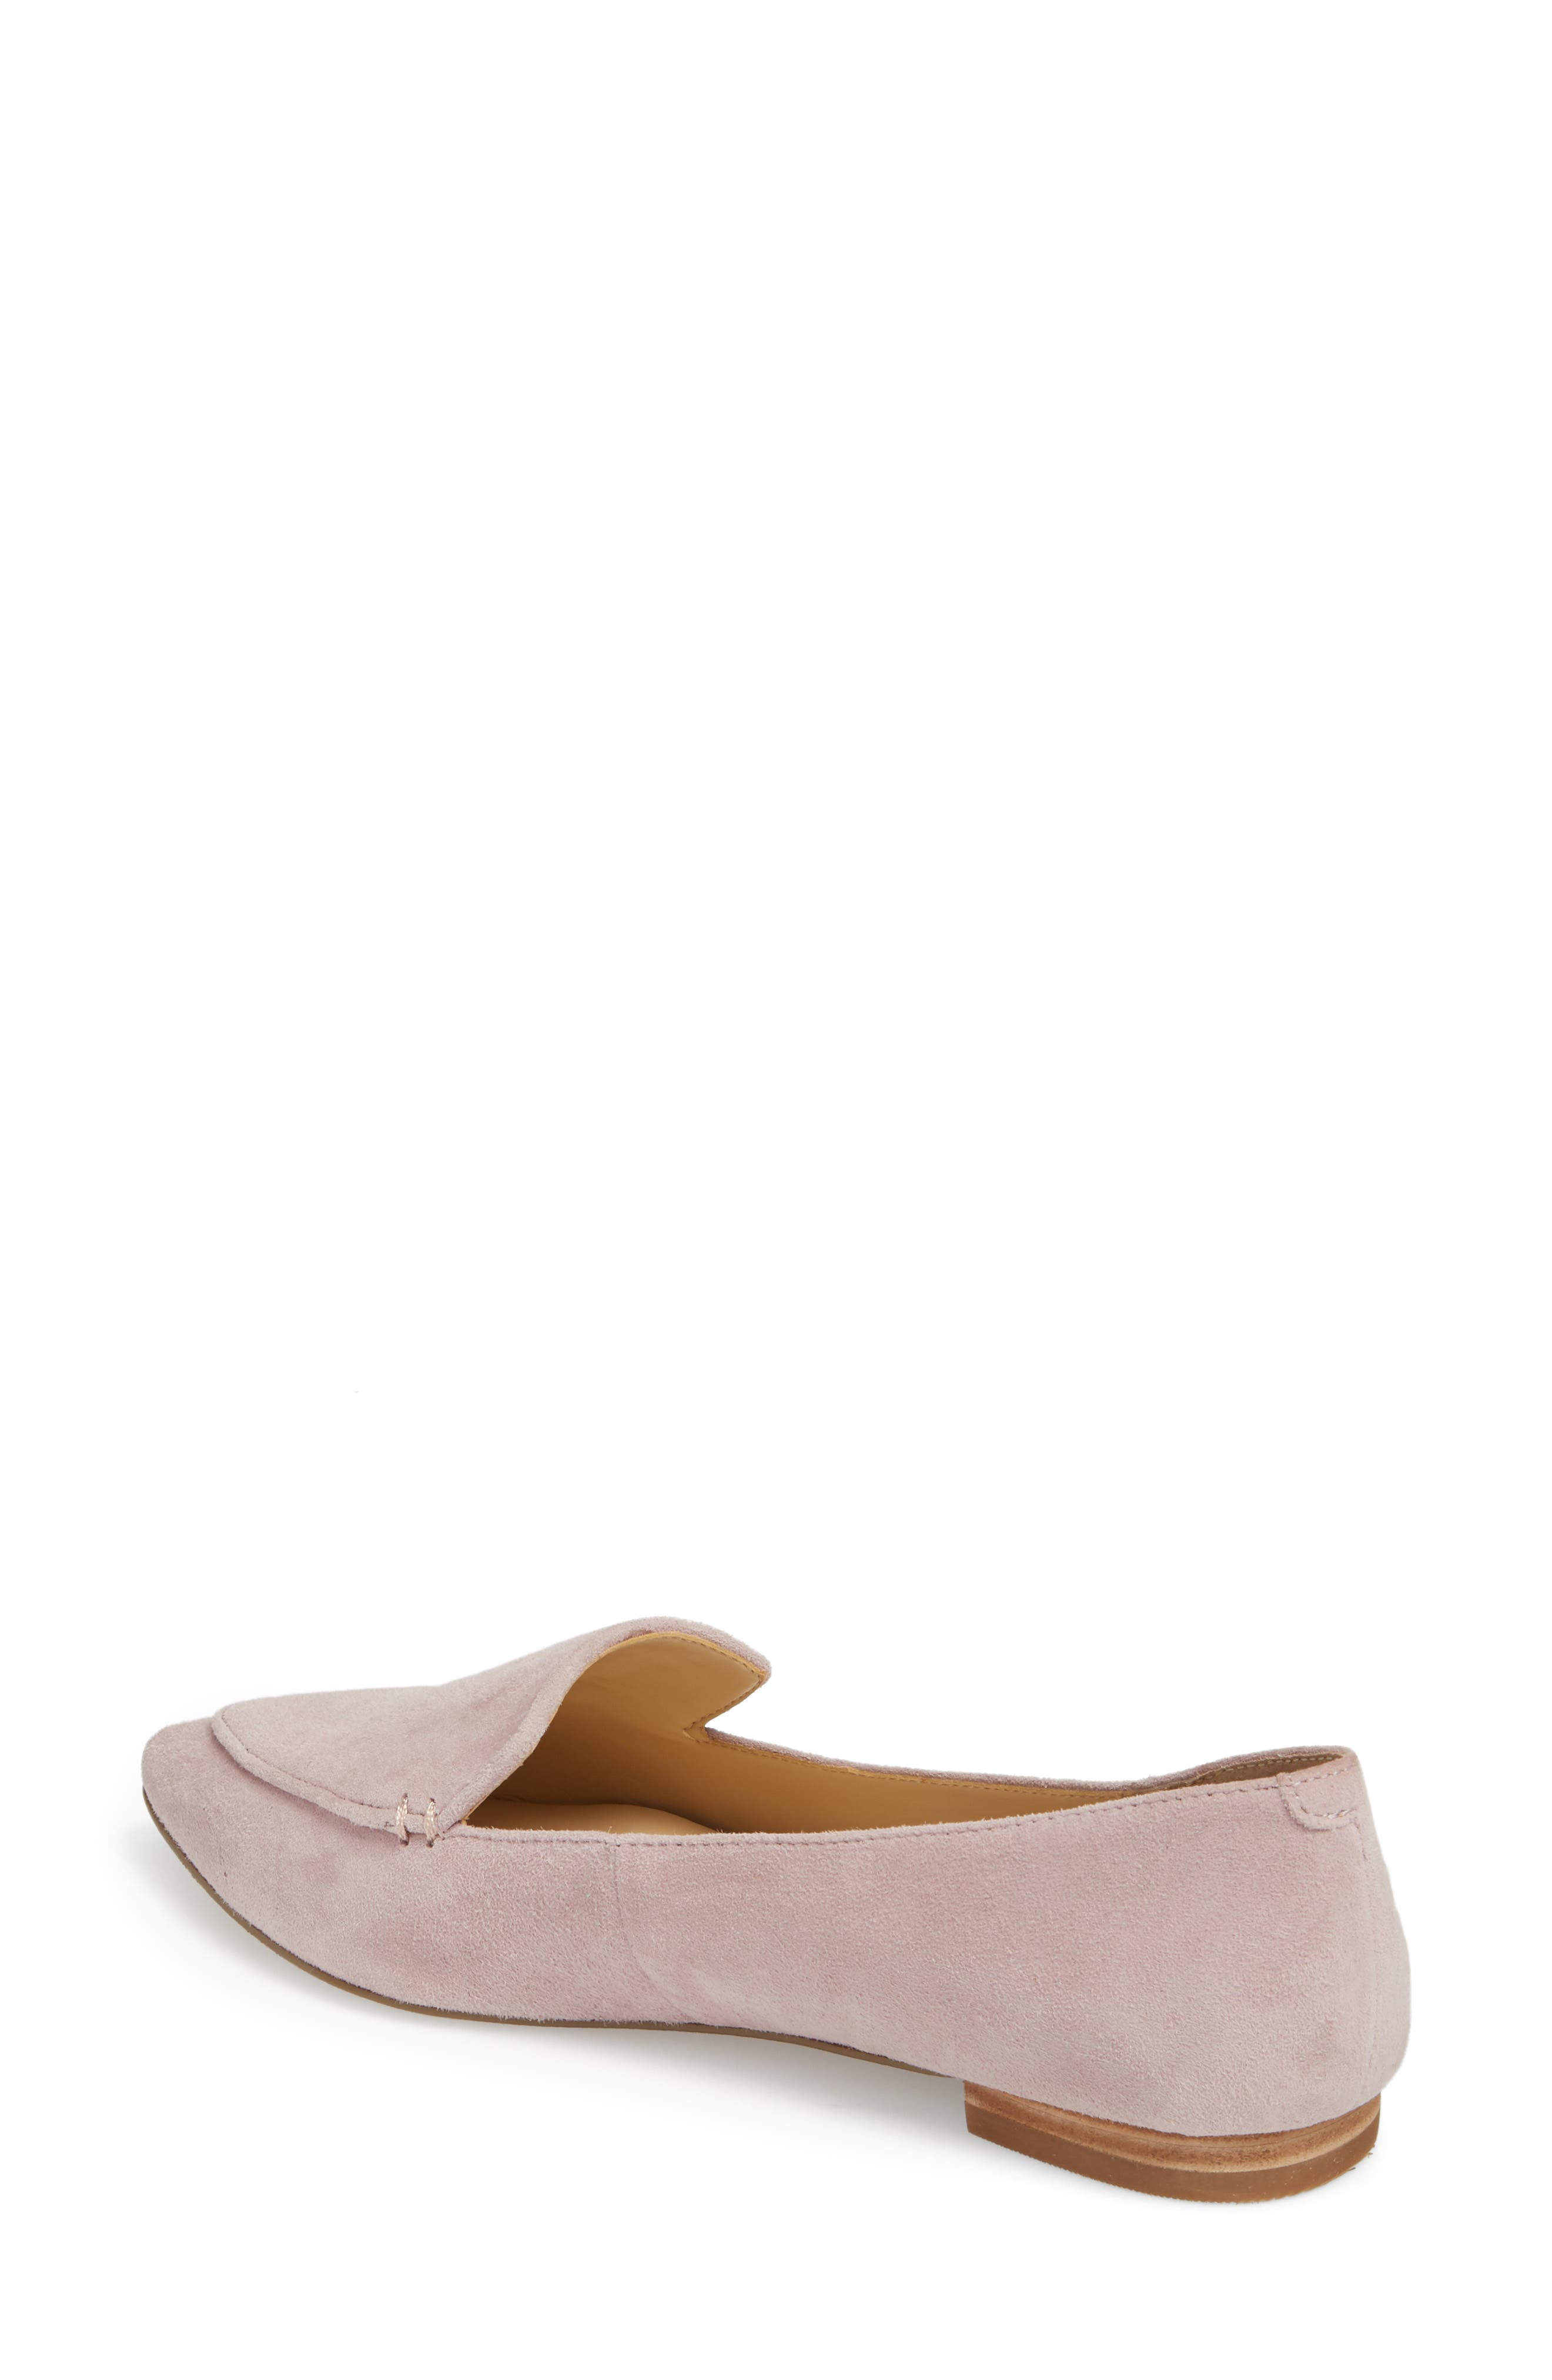 'Cammila' Pointy Toe Loafer,                             Alternate thumbnail 14, color,